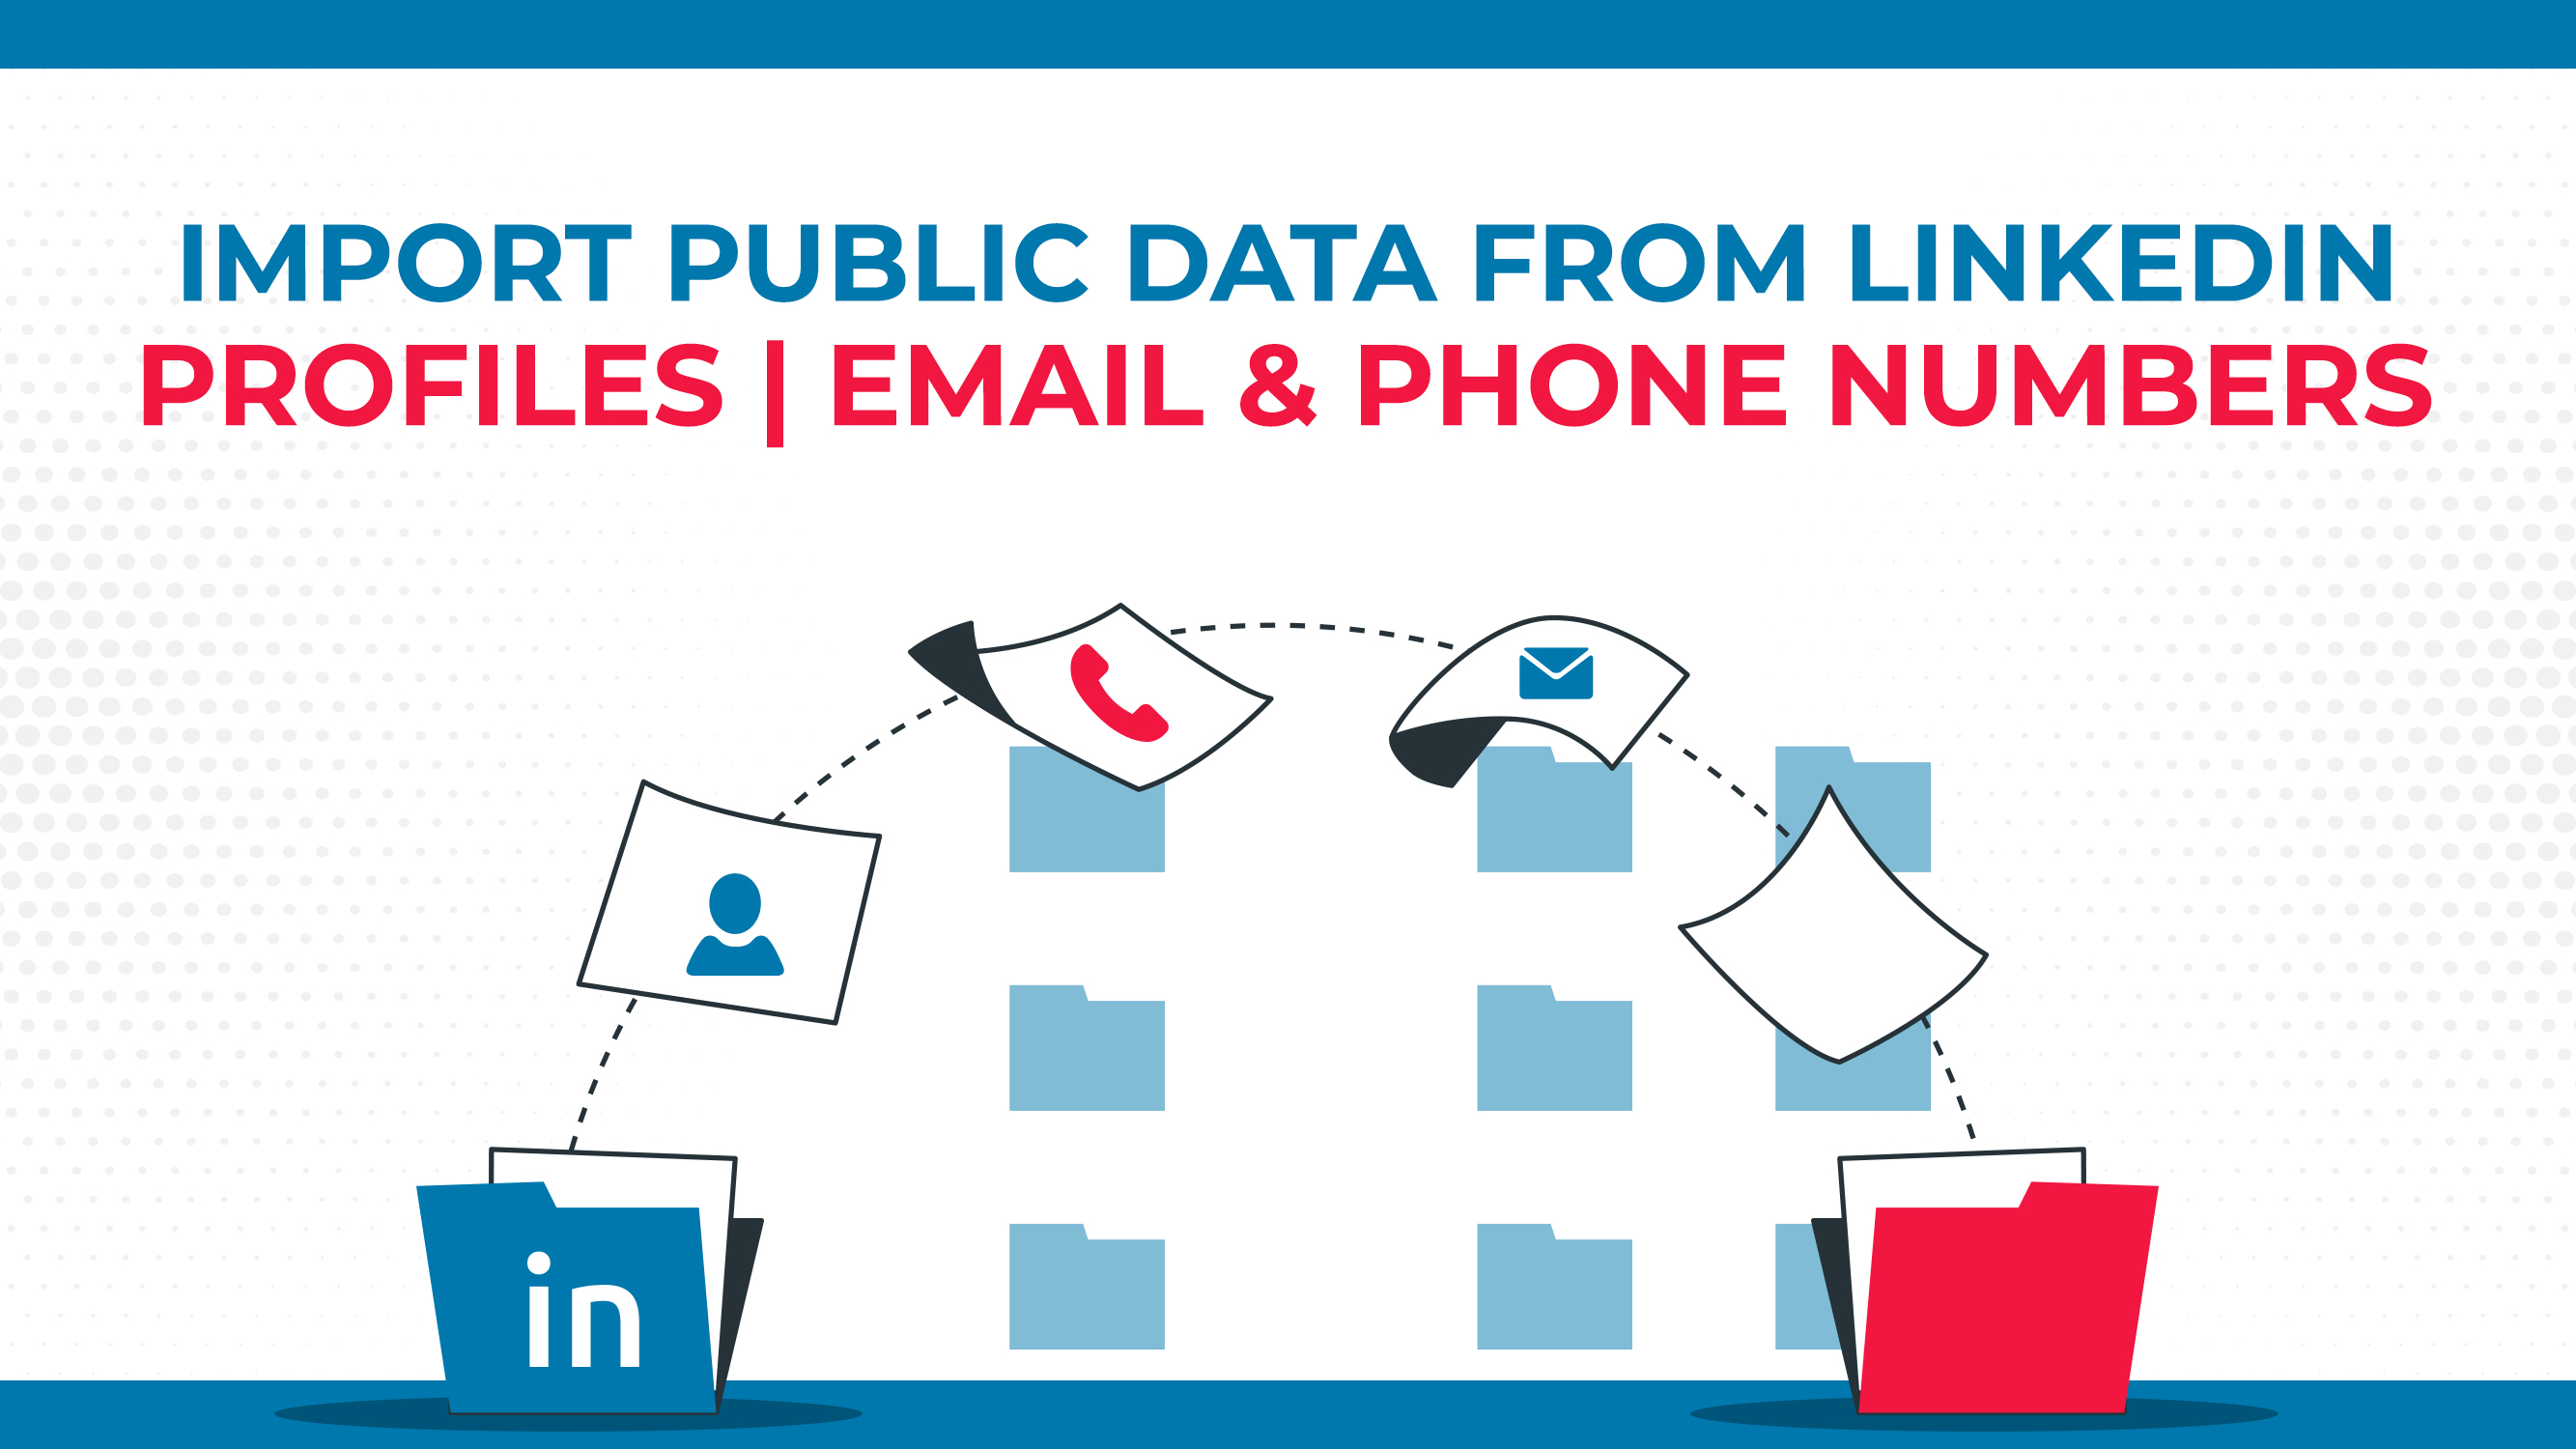 Import Public Data From LinkedIn Profiles | Email & Phone Numbers